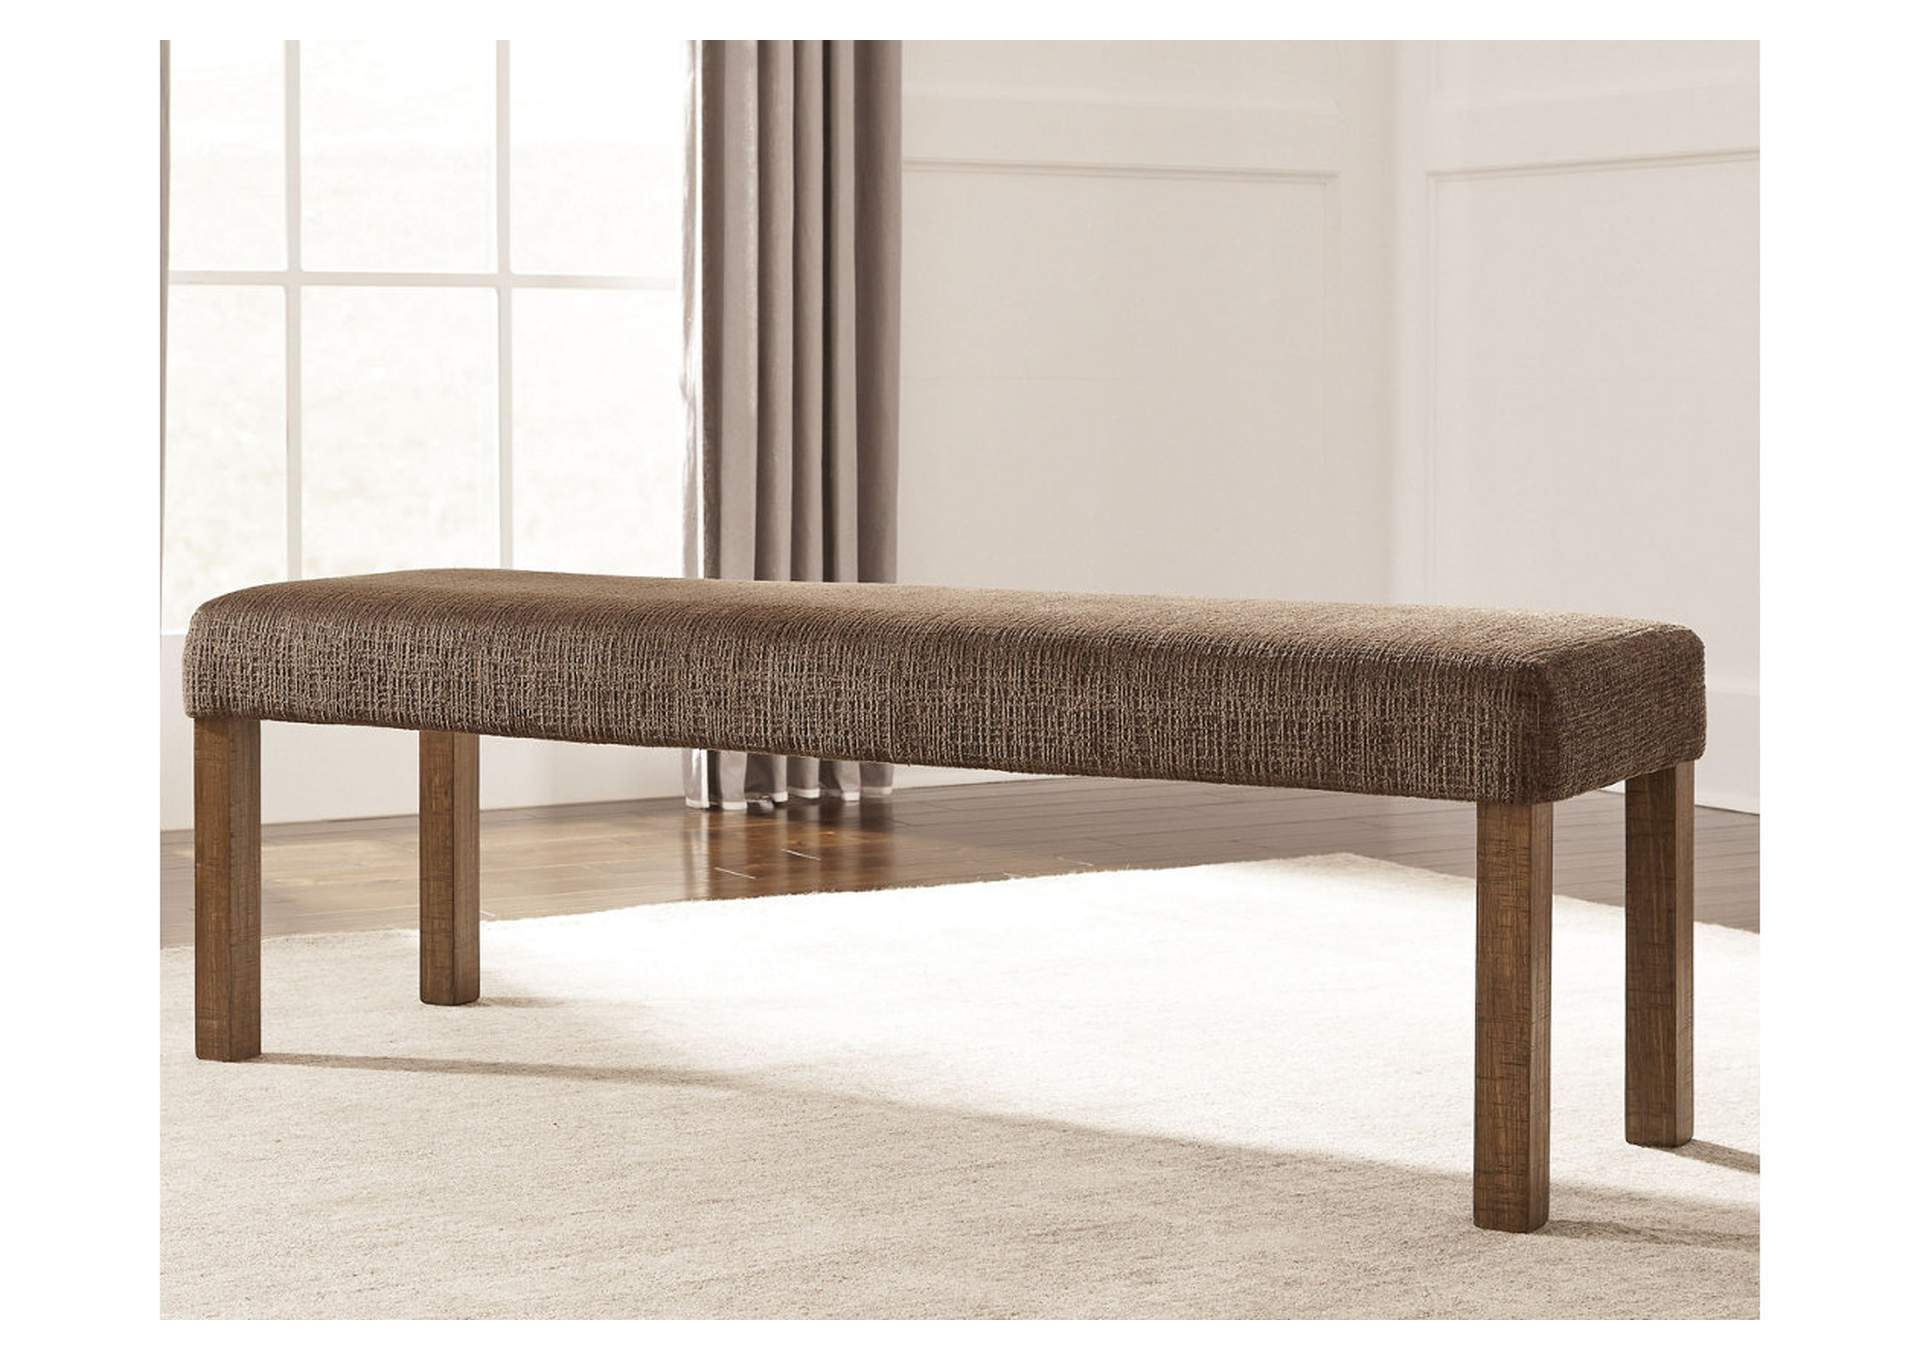 Tamilo Gray/Brown Large Uphostery Dining Room Bench,Signature Design By Ashley